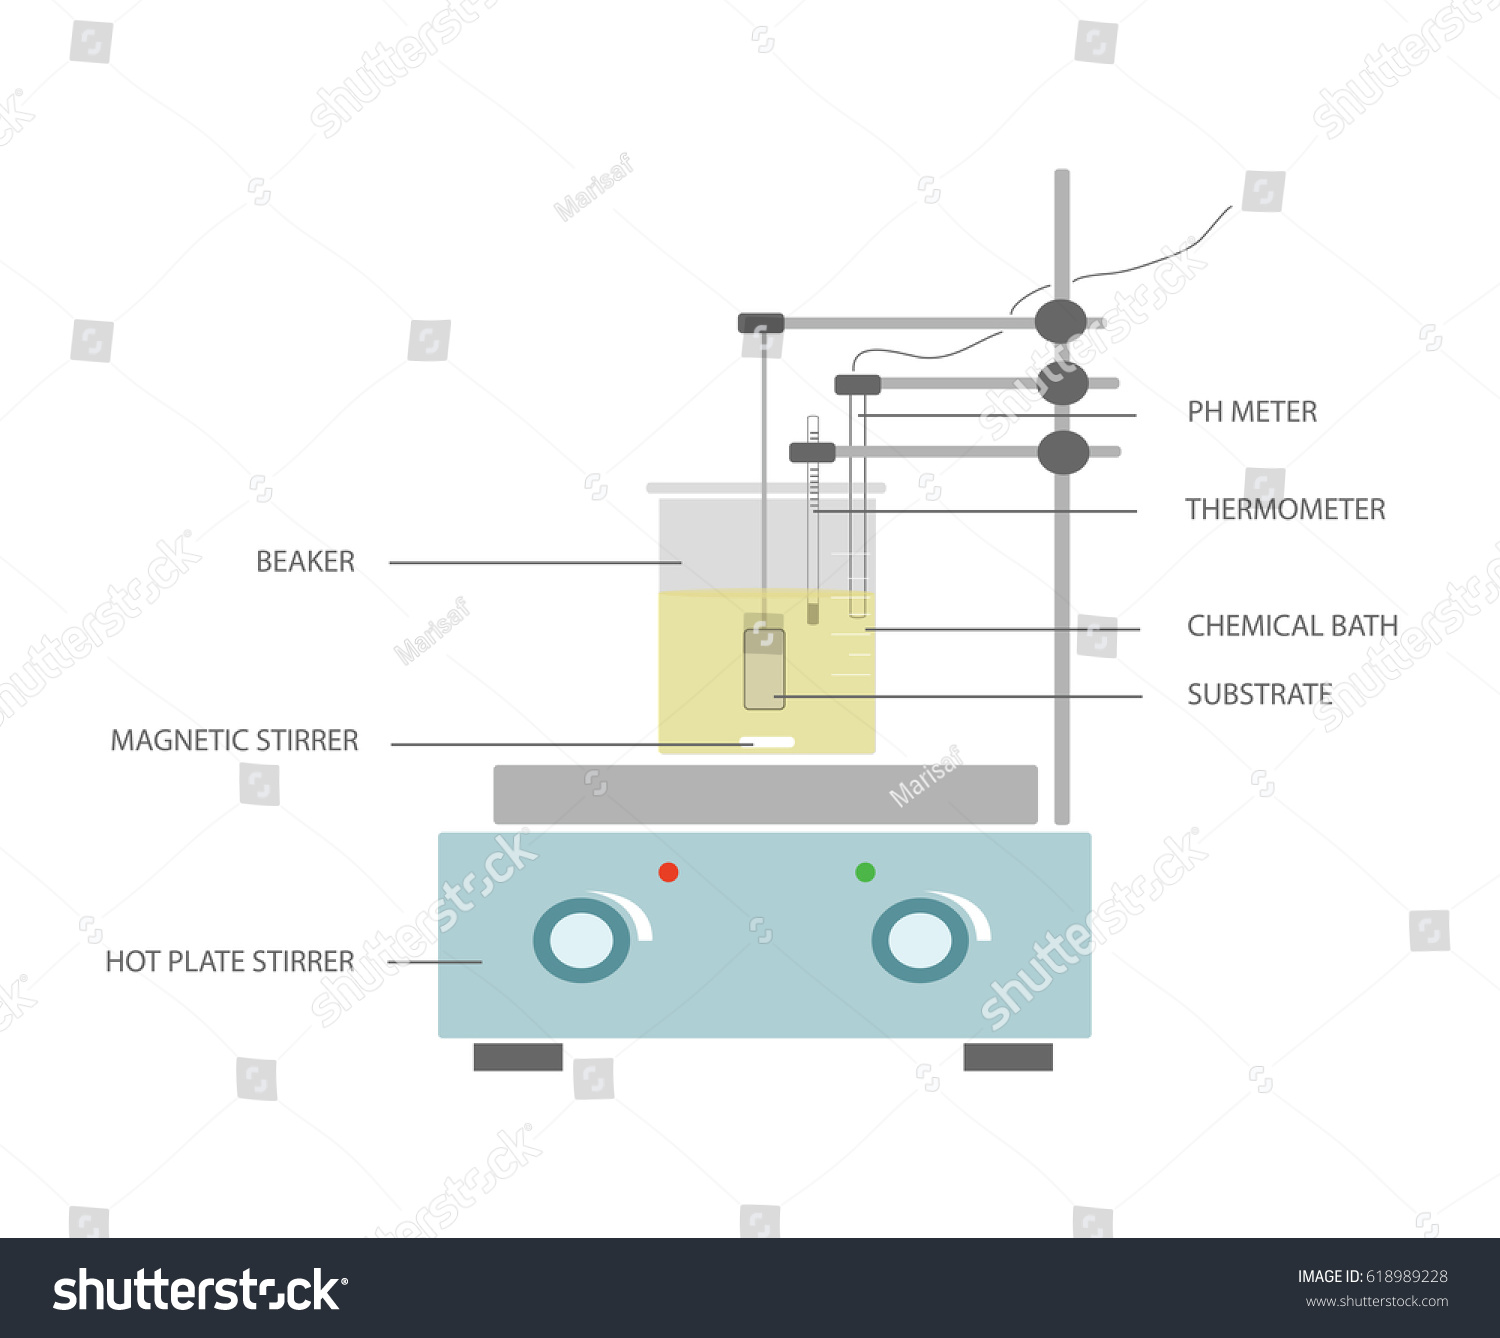 labelled diagram of ph meter thermostat wiring diagrams chemical bath deposition equipment stock vector royalty free